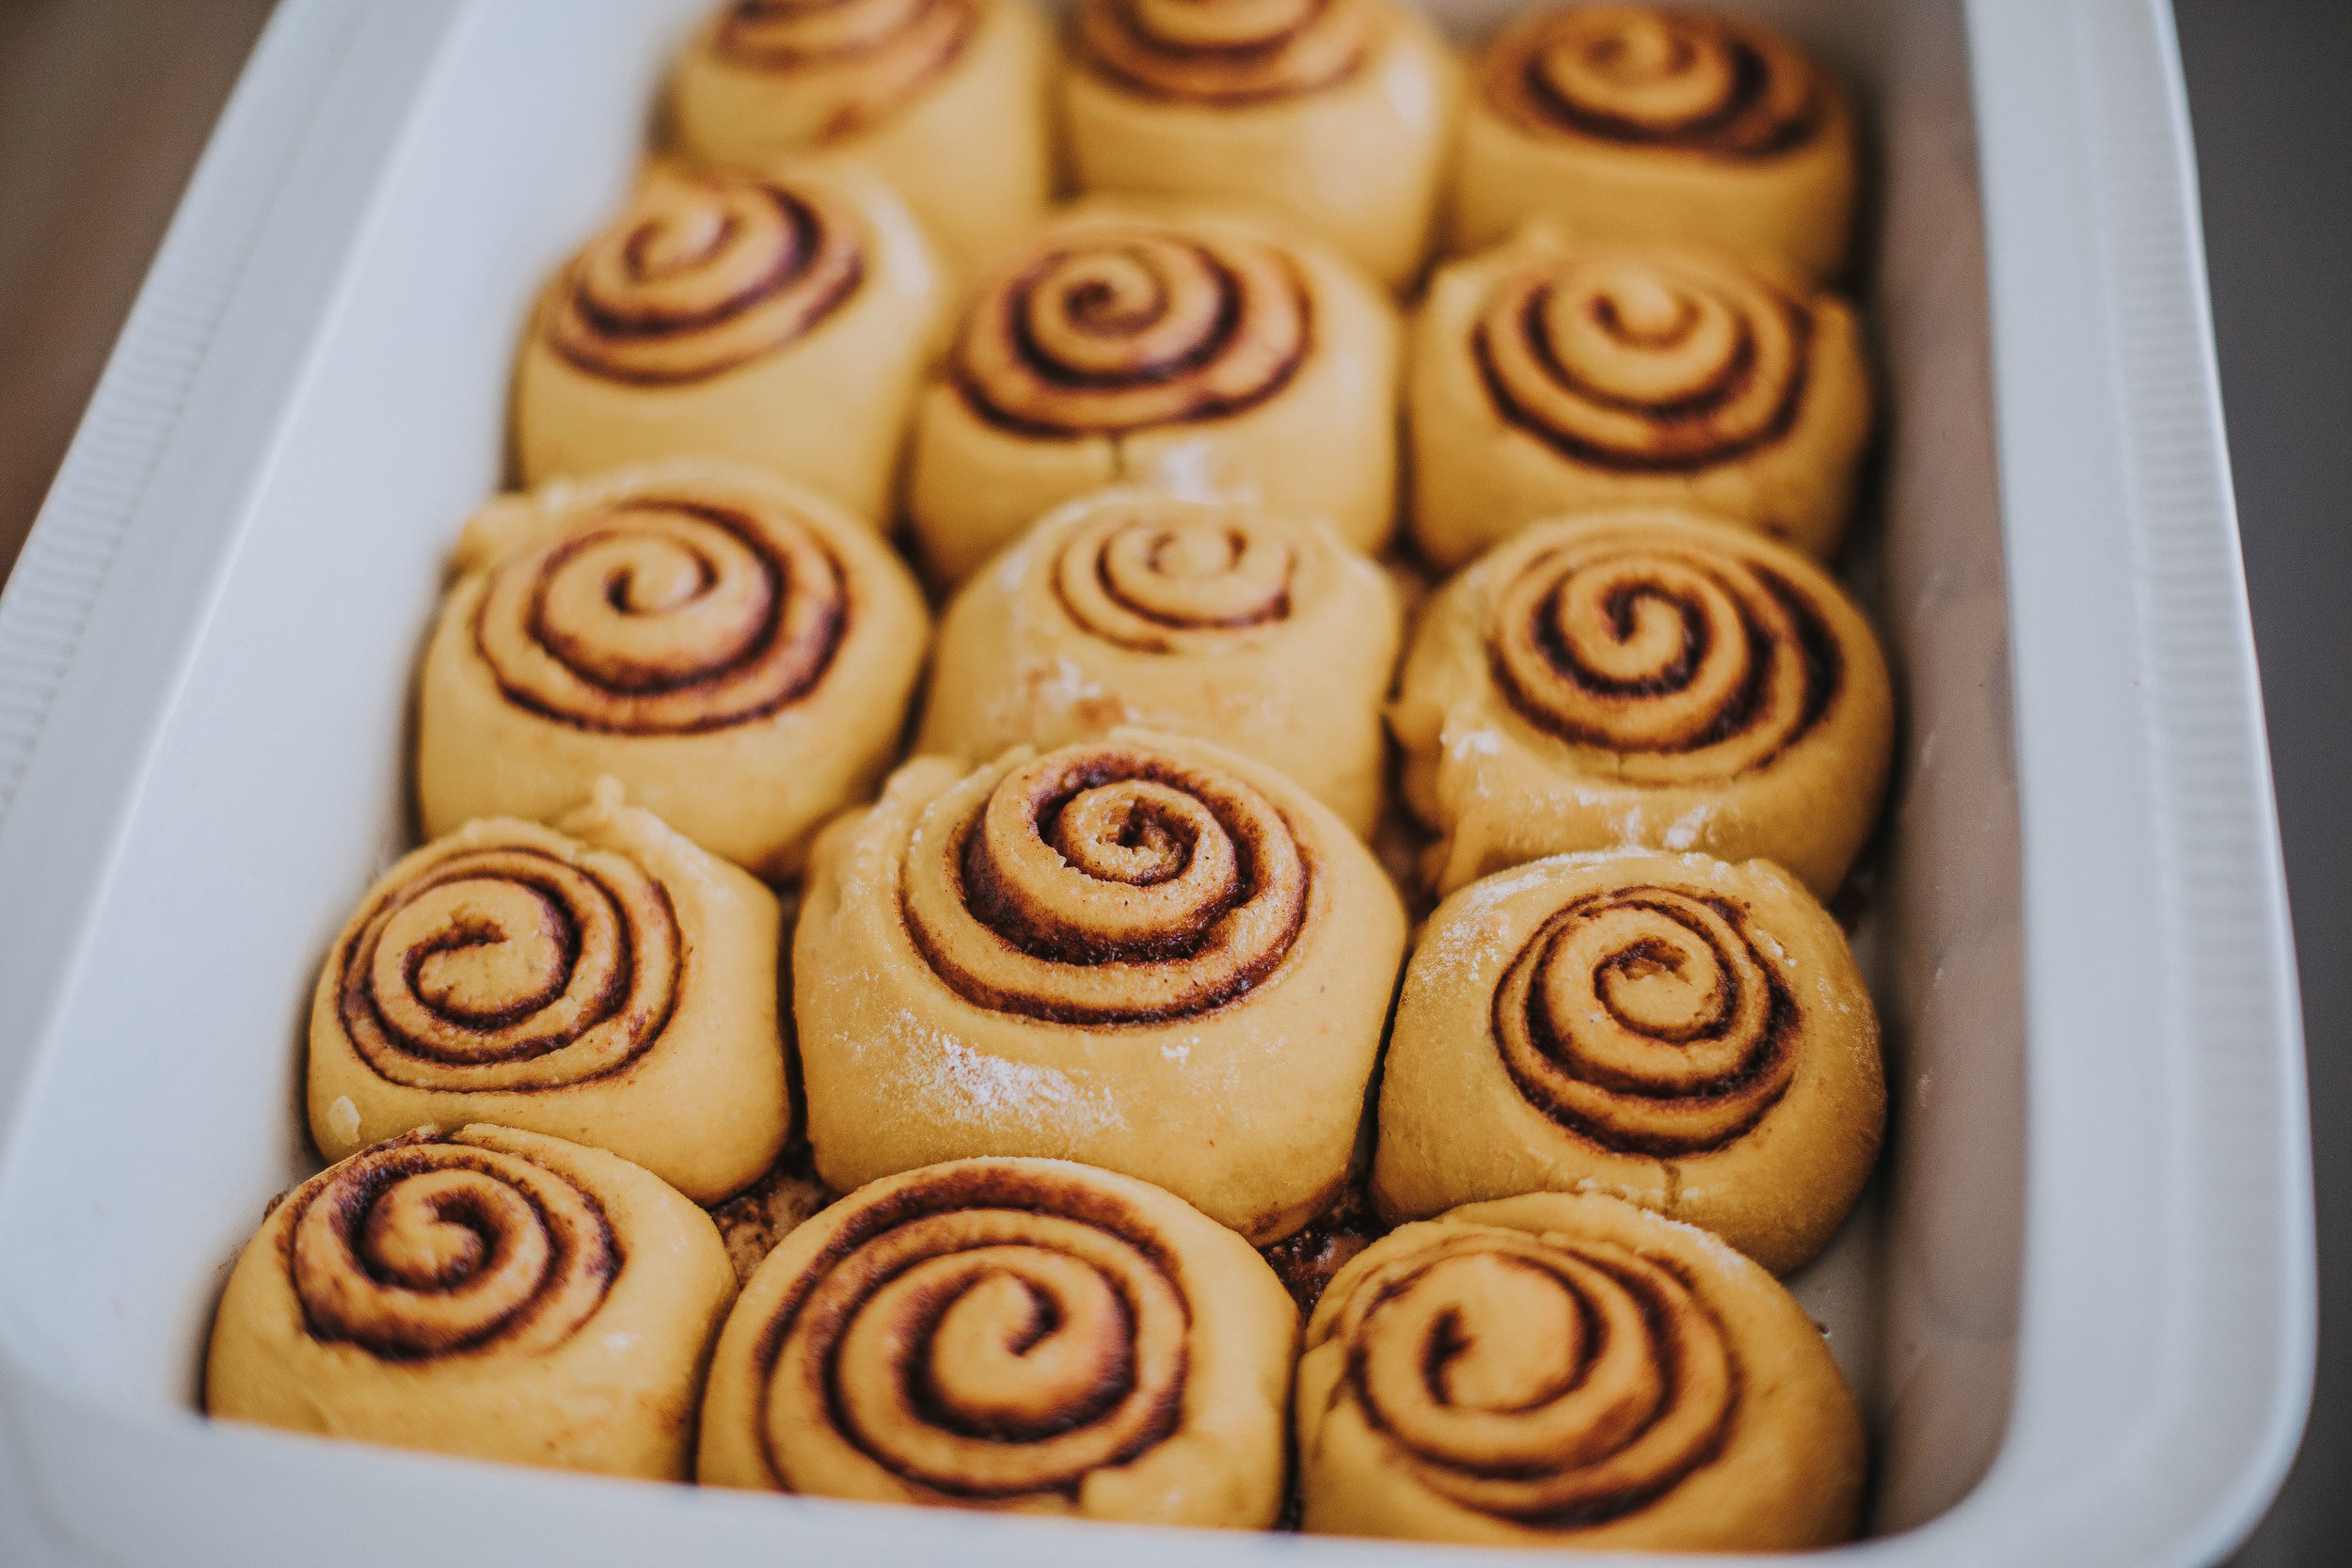 Ingredients - Pumpkin Dough1/3 C milk2 T unsalted butter½ C canned 100% pure pumpkin¼ C light brown sugar¼ tsp nutmeg½ tsp salt1 large egg2 and ¼ tsp instant yeast2 and 2/3 C all-purpose flour